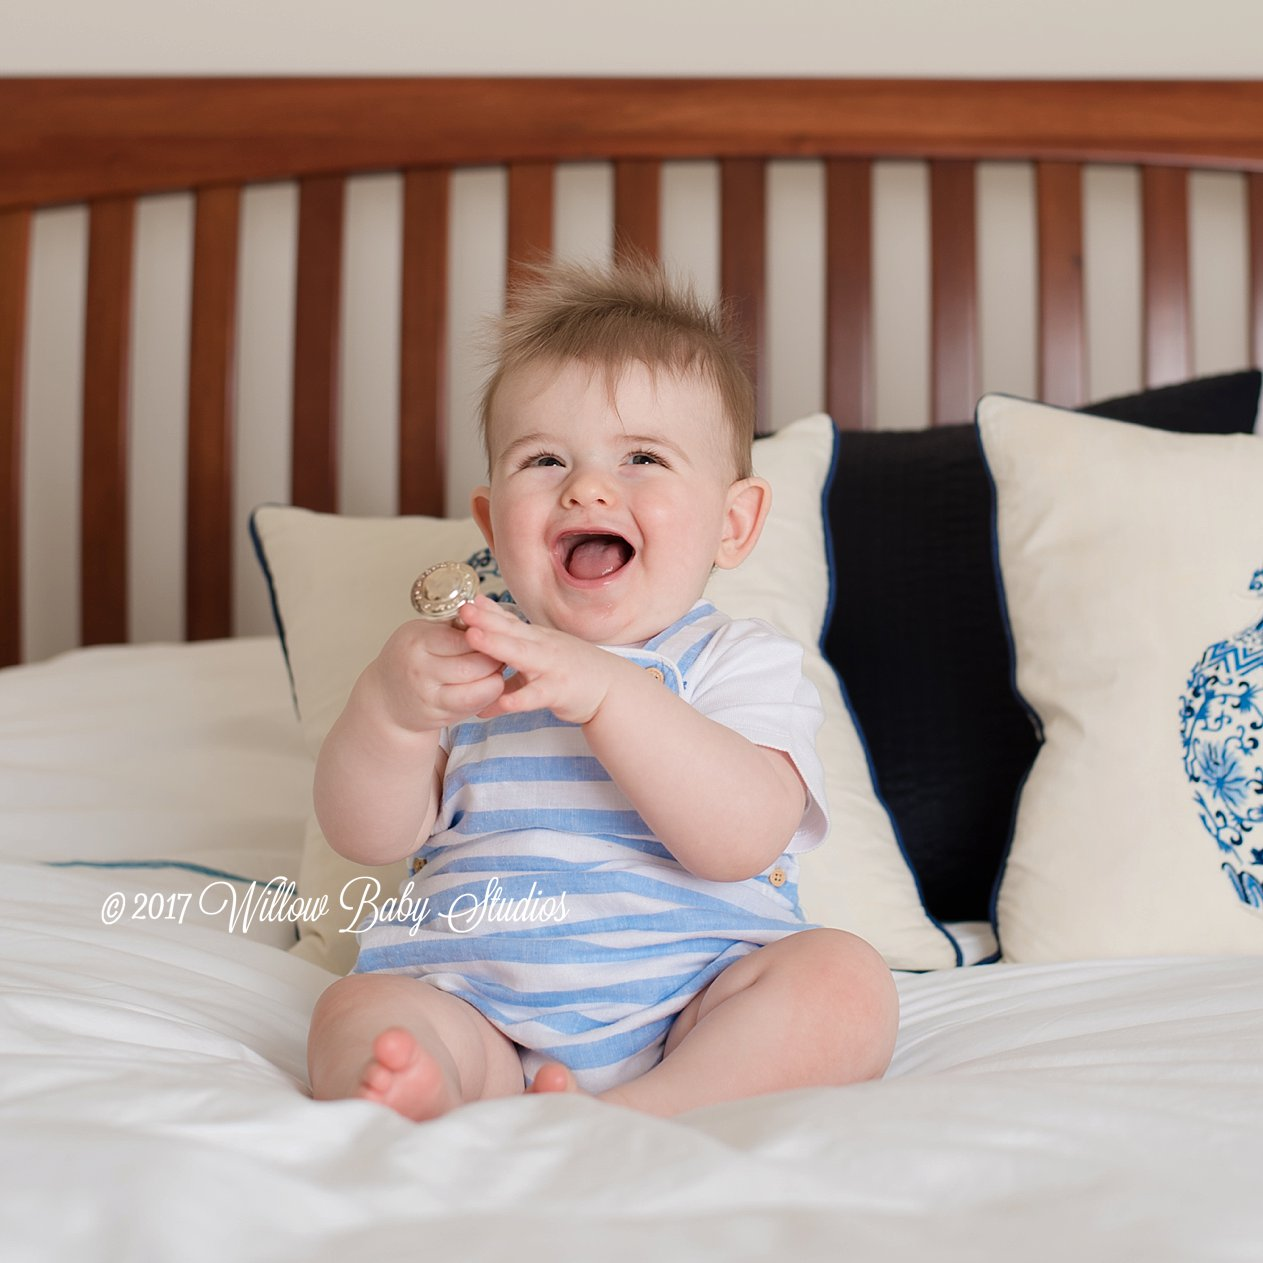 super smiley baby playing with classic rattle